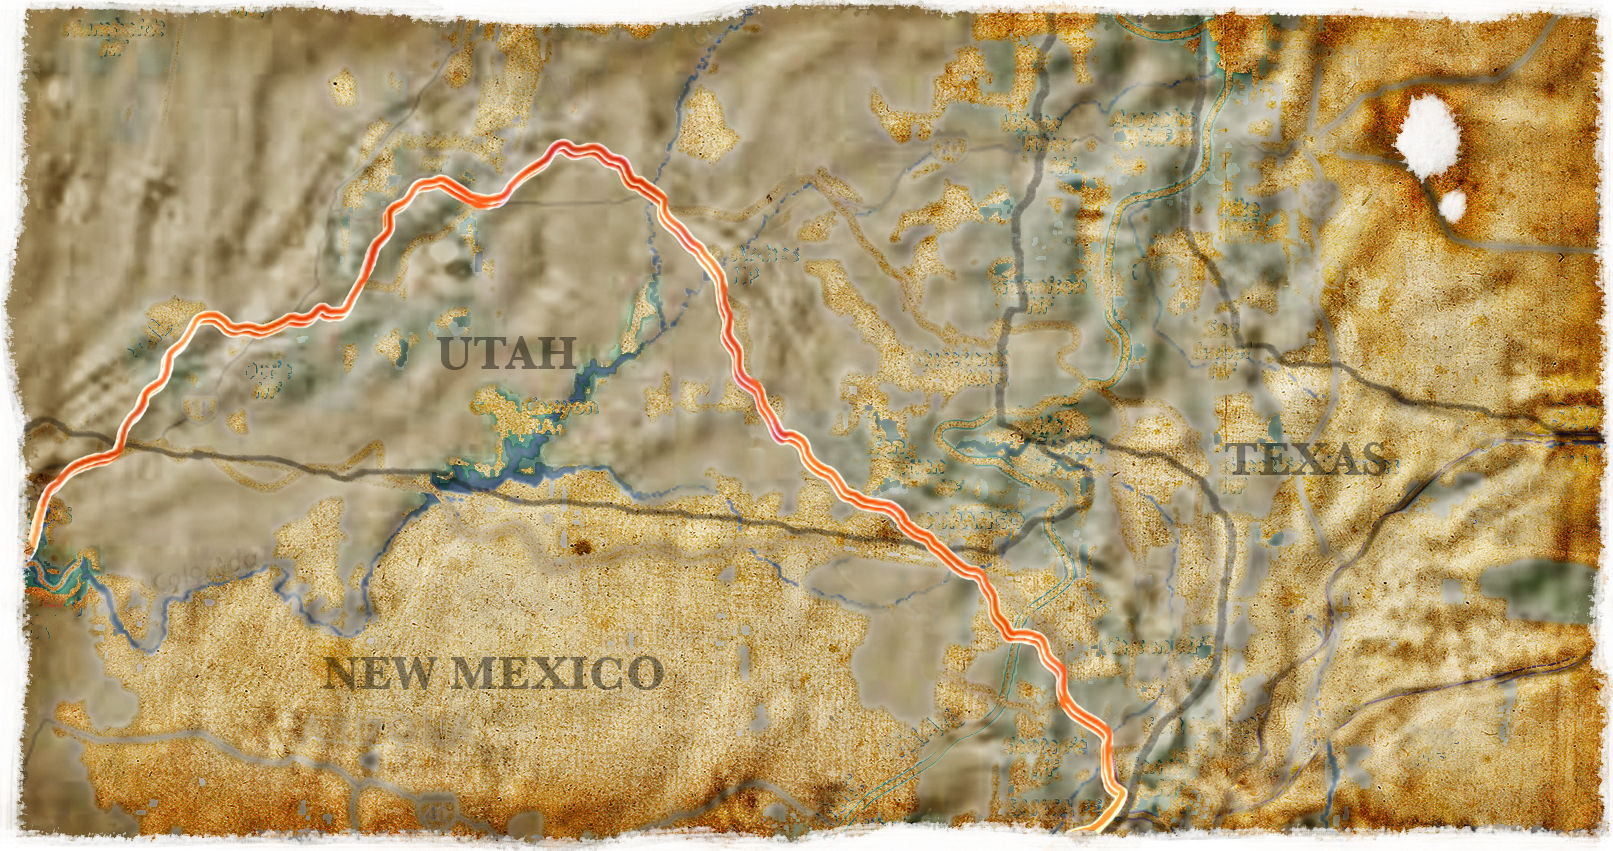 Old map, Film Score In Reverse Series entertains audiences with Spanish Trail, enhancing a live musical performance with videos and images of the west.